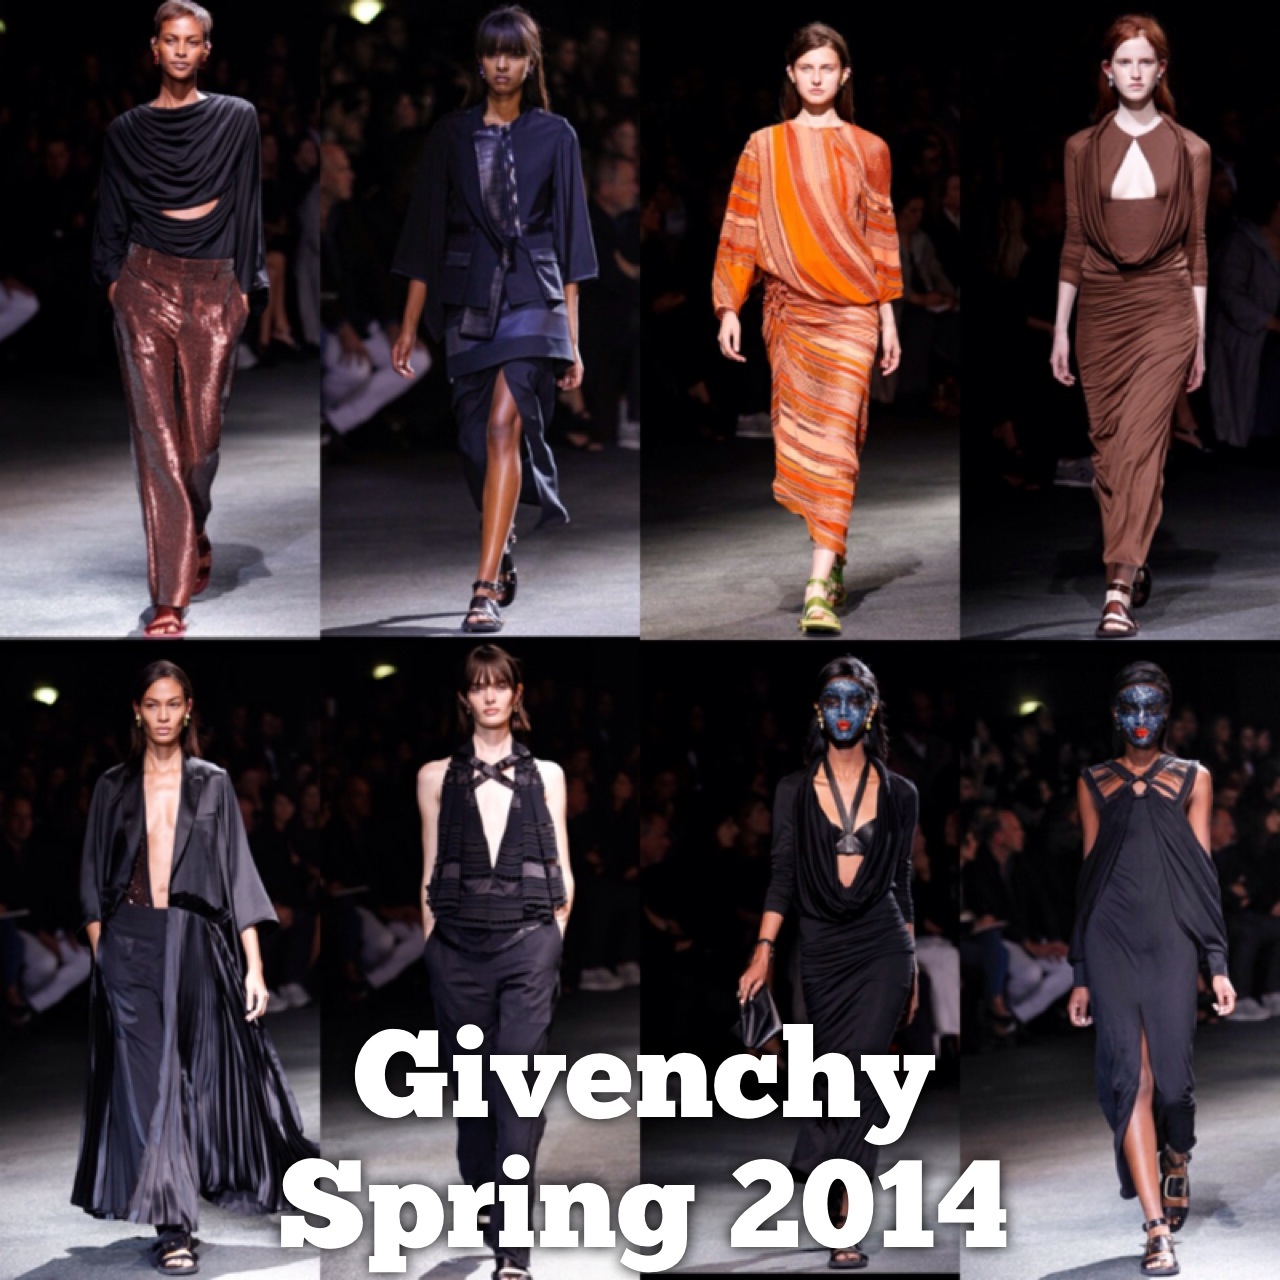 Spring 2014 Givenchy